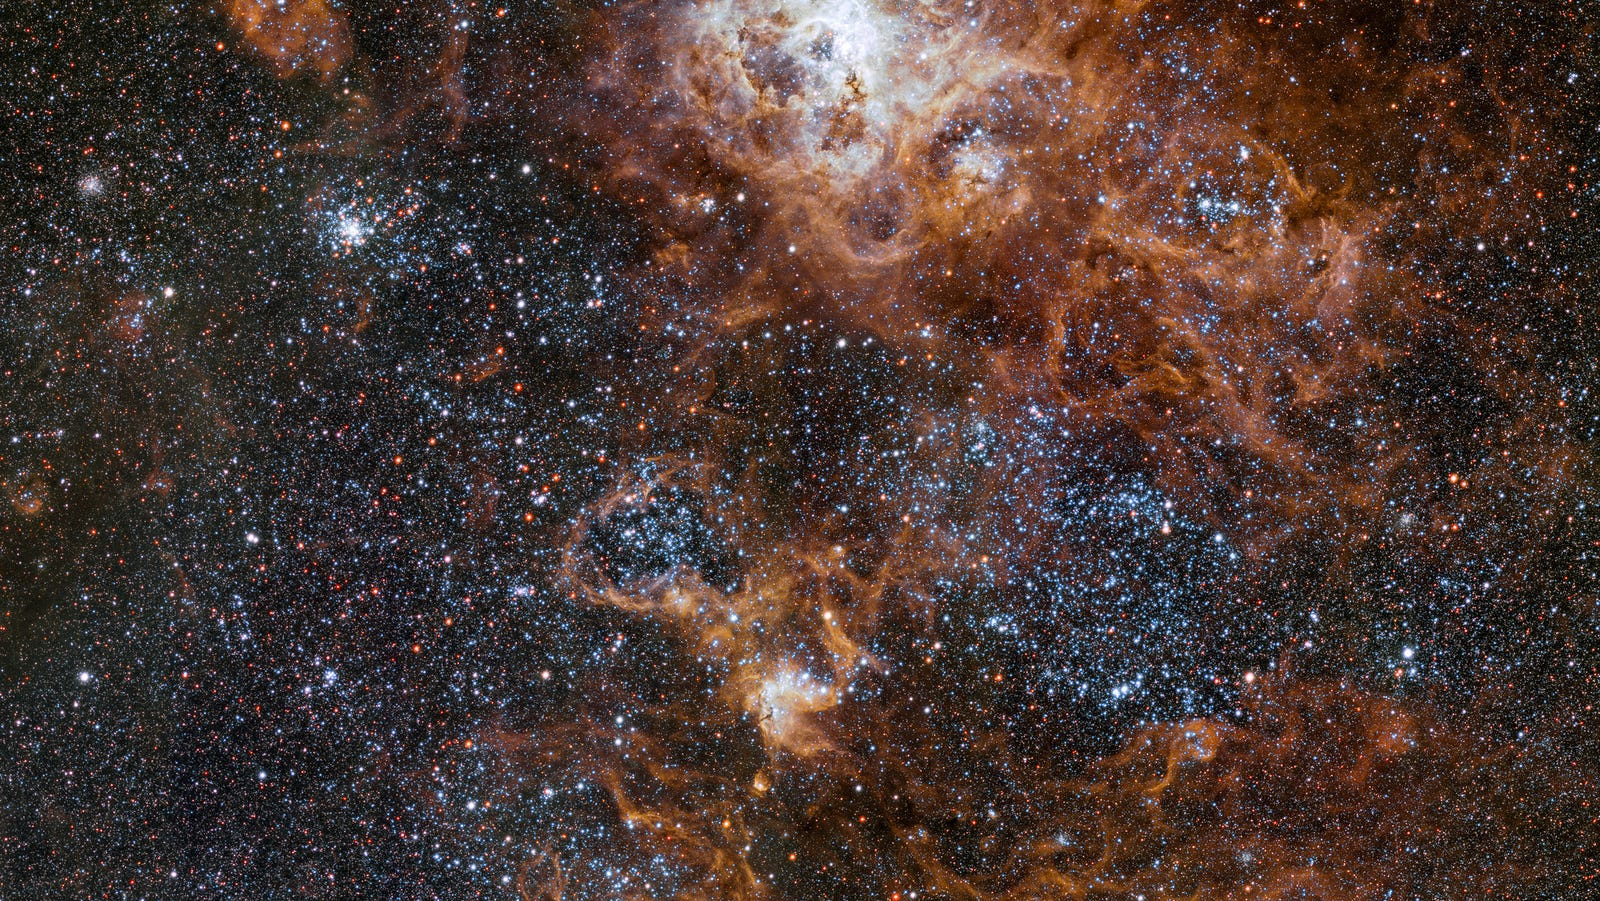 New View of the Tarantula Nebula Is the Space Picture We All Need Today